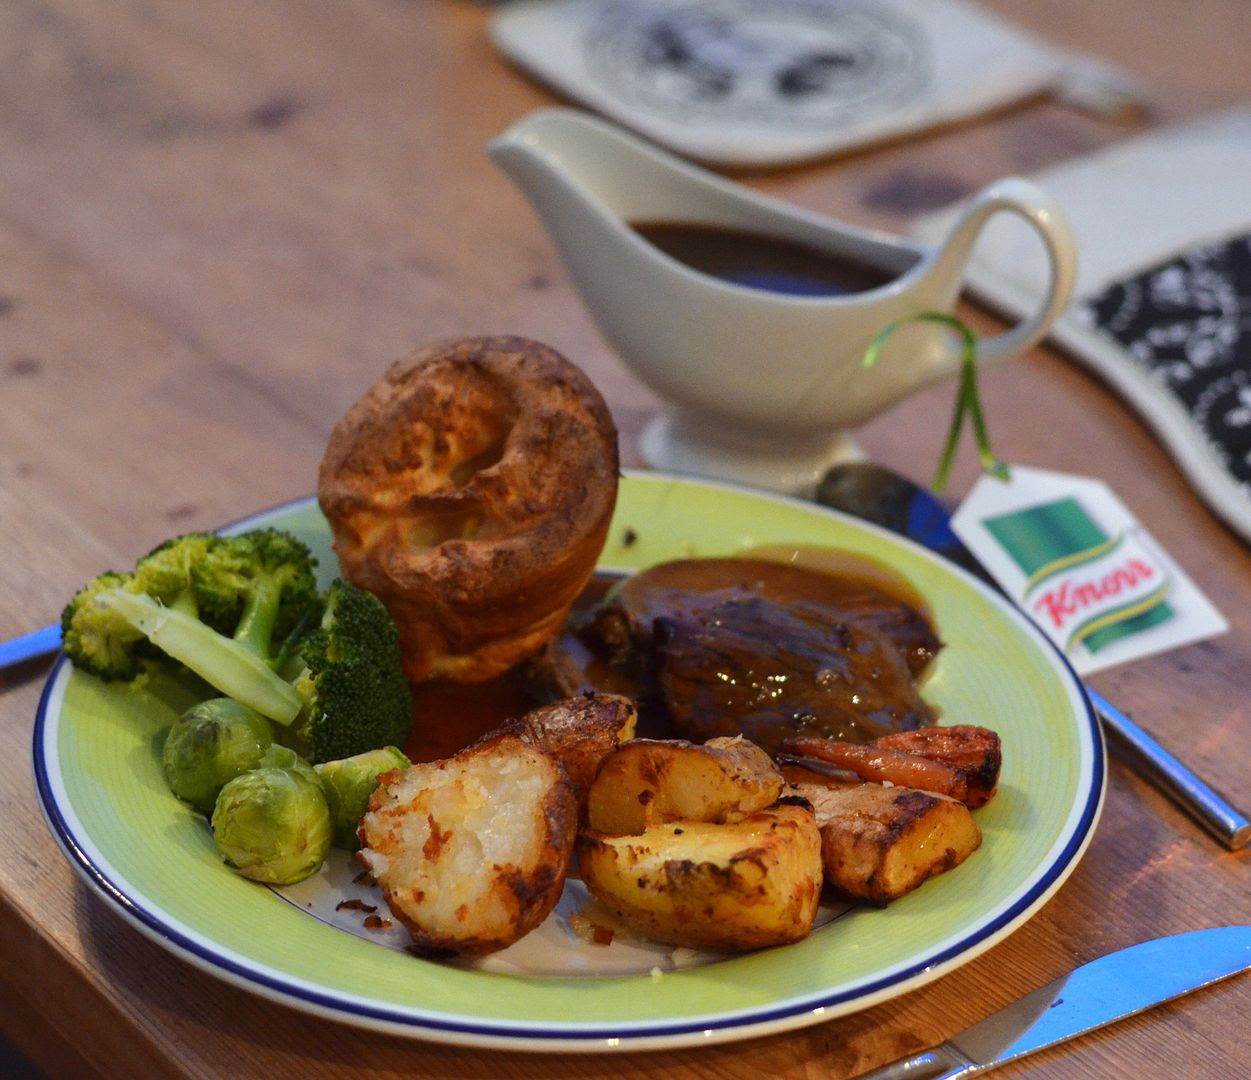 photo roastbeefdinner2_zpse1d60da2.jpg